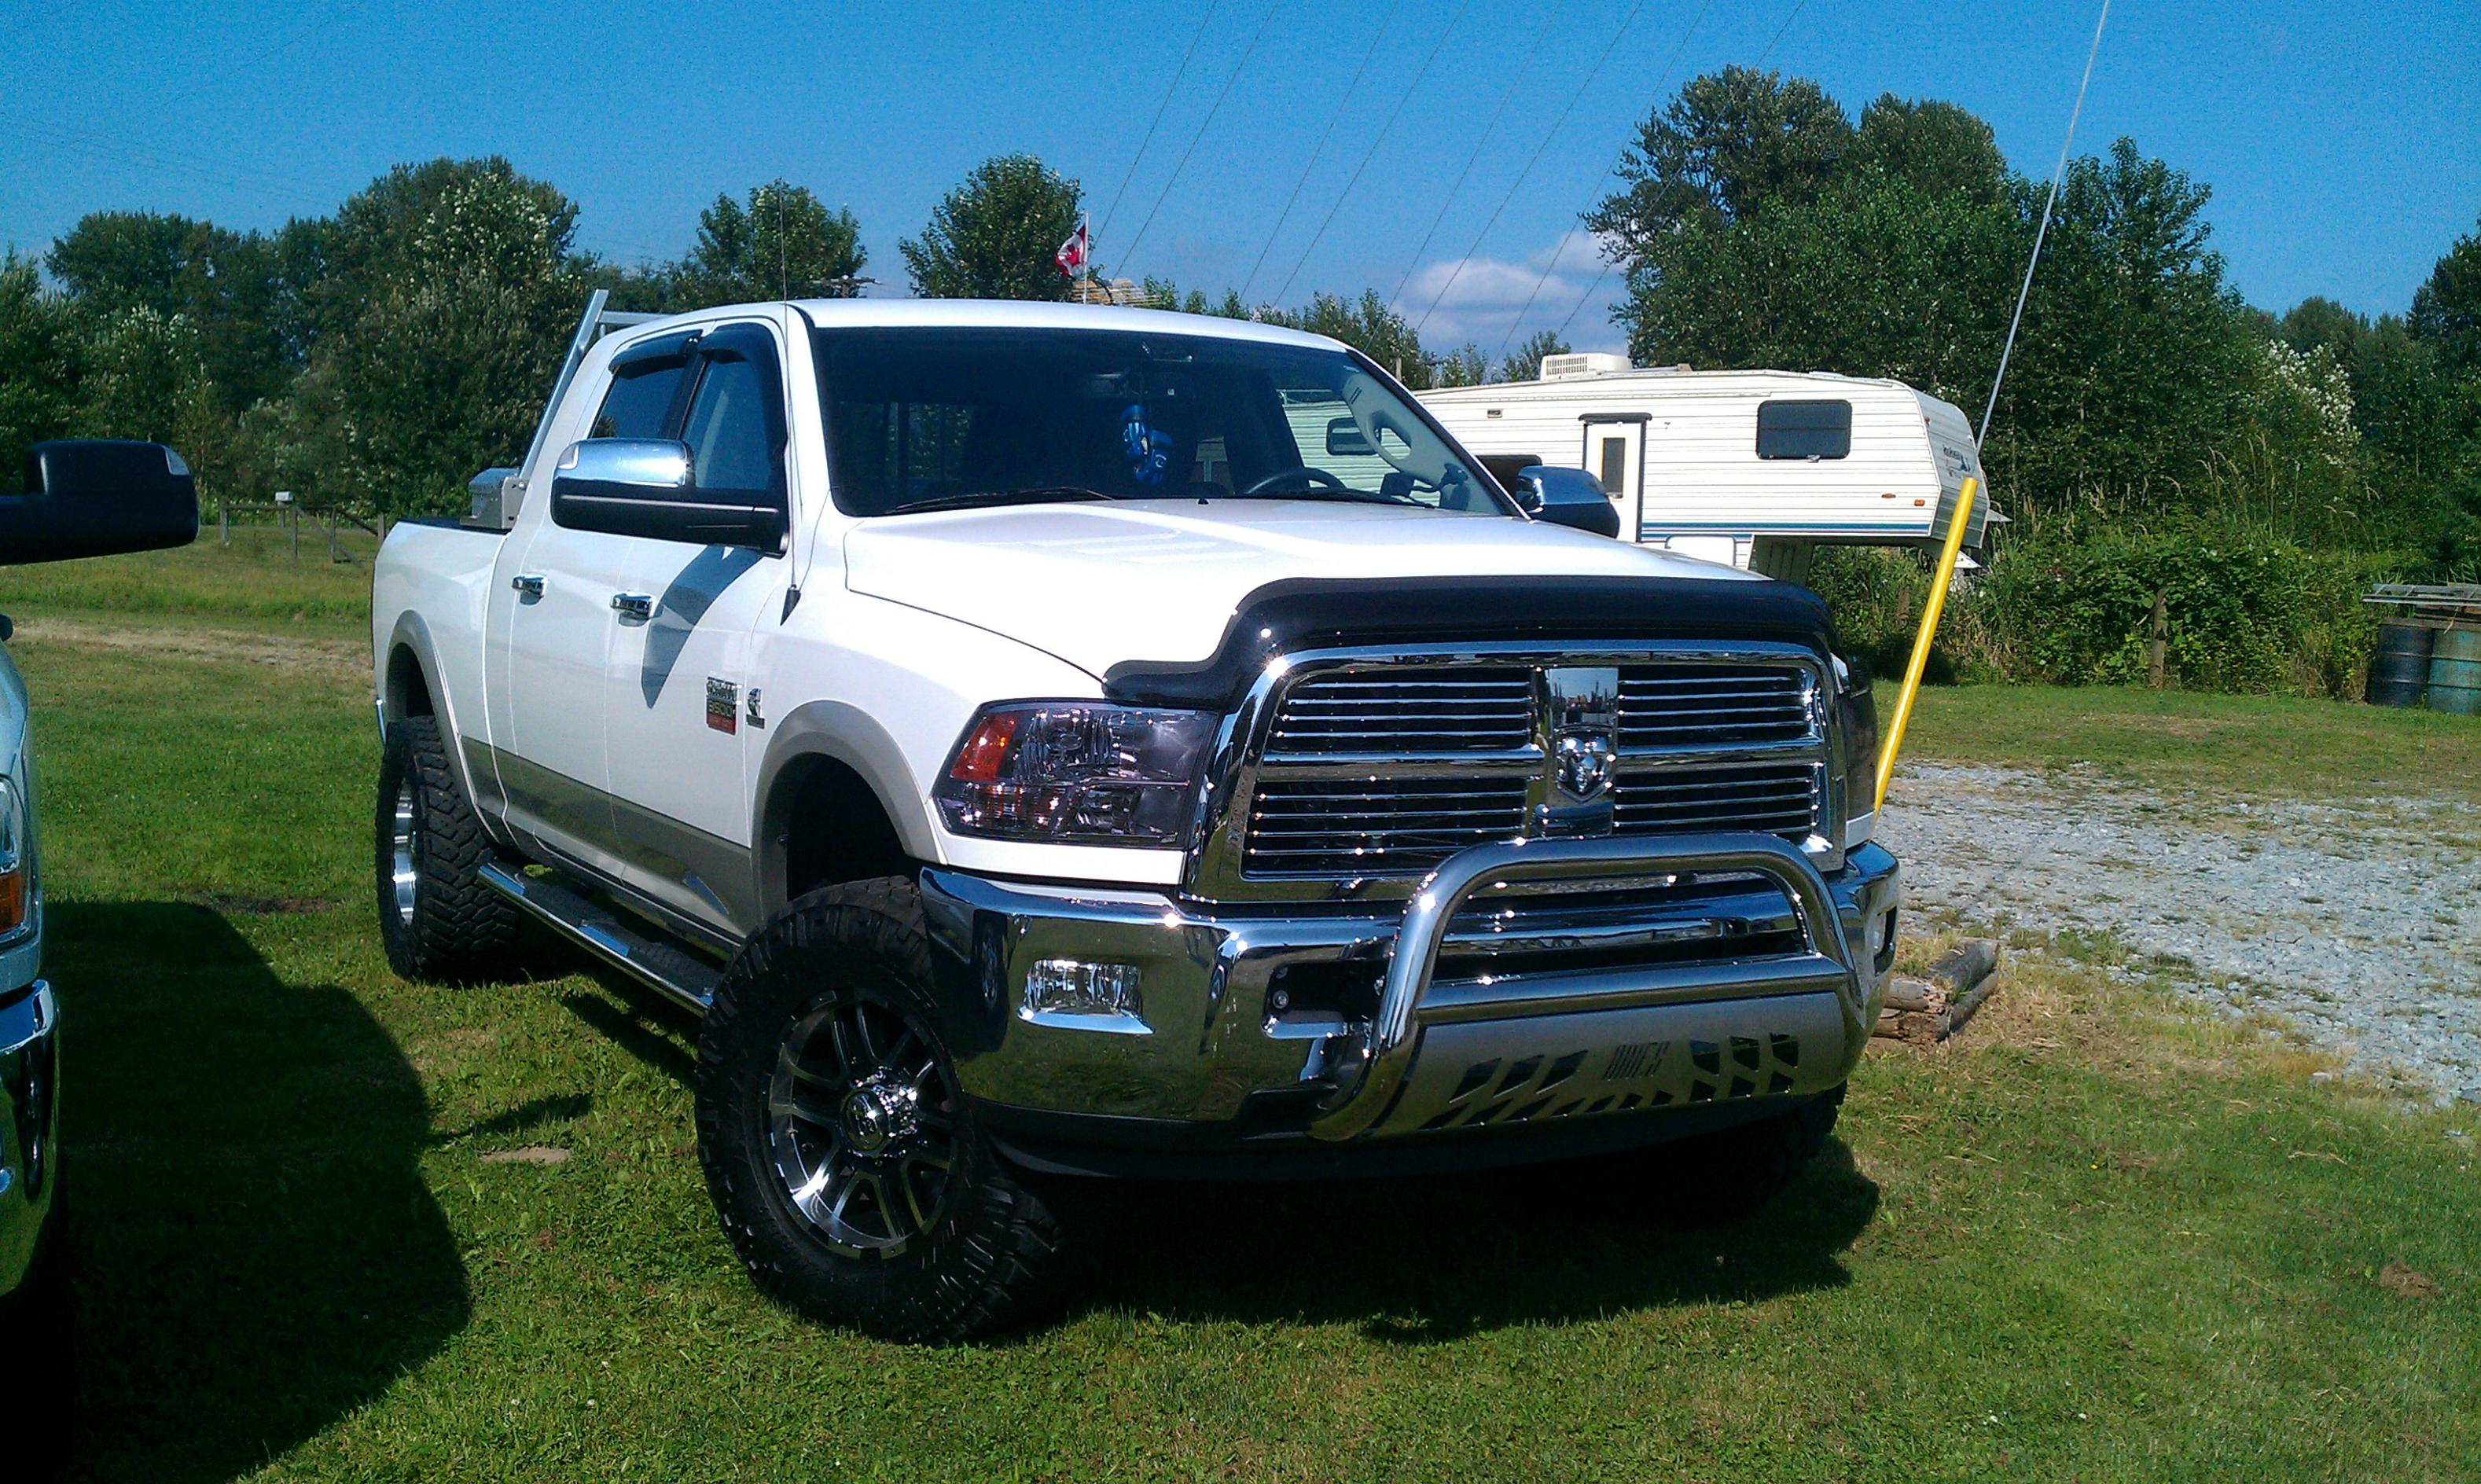 D Pics Bull Bars Aftermarket Grill Imag on Dodge Ram 3500 Bull Bars